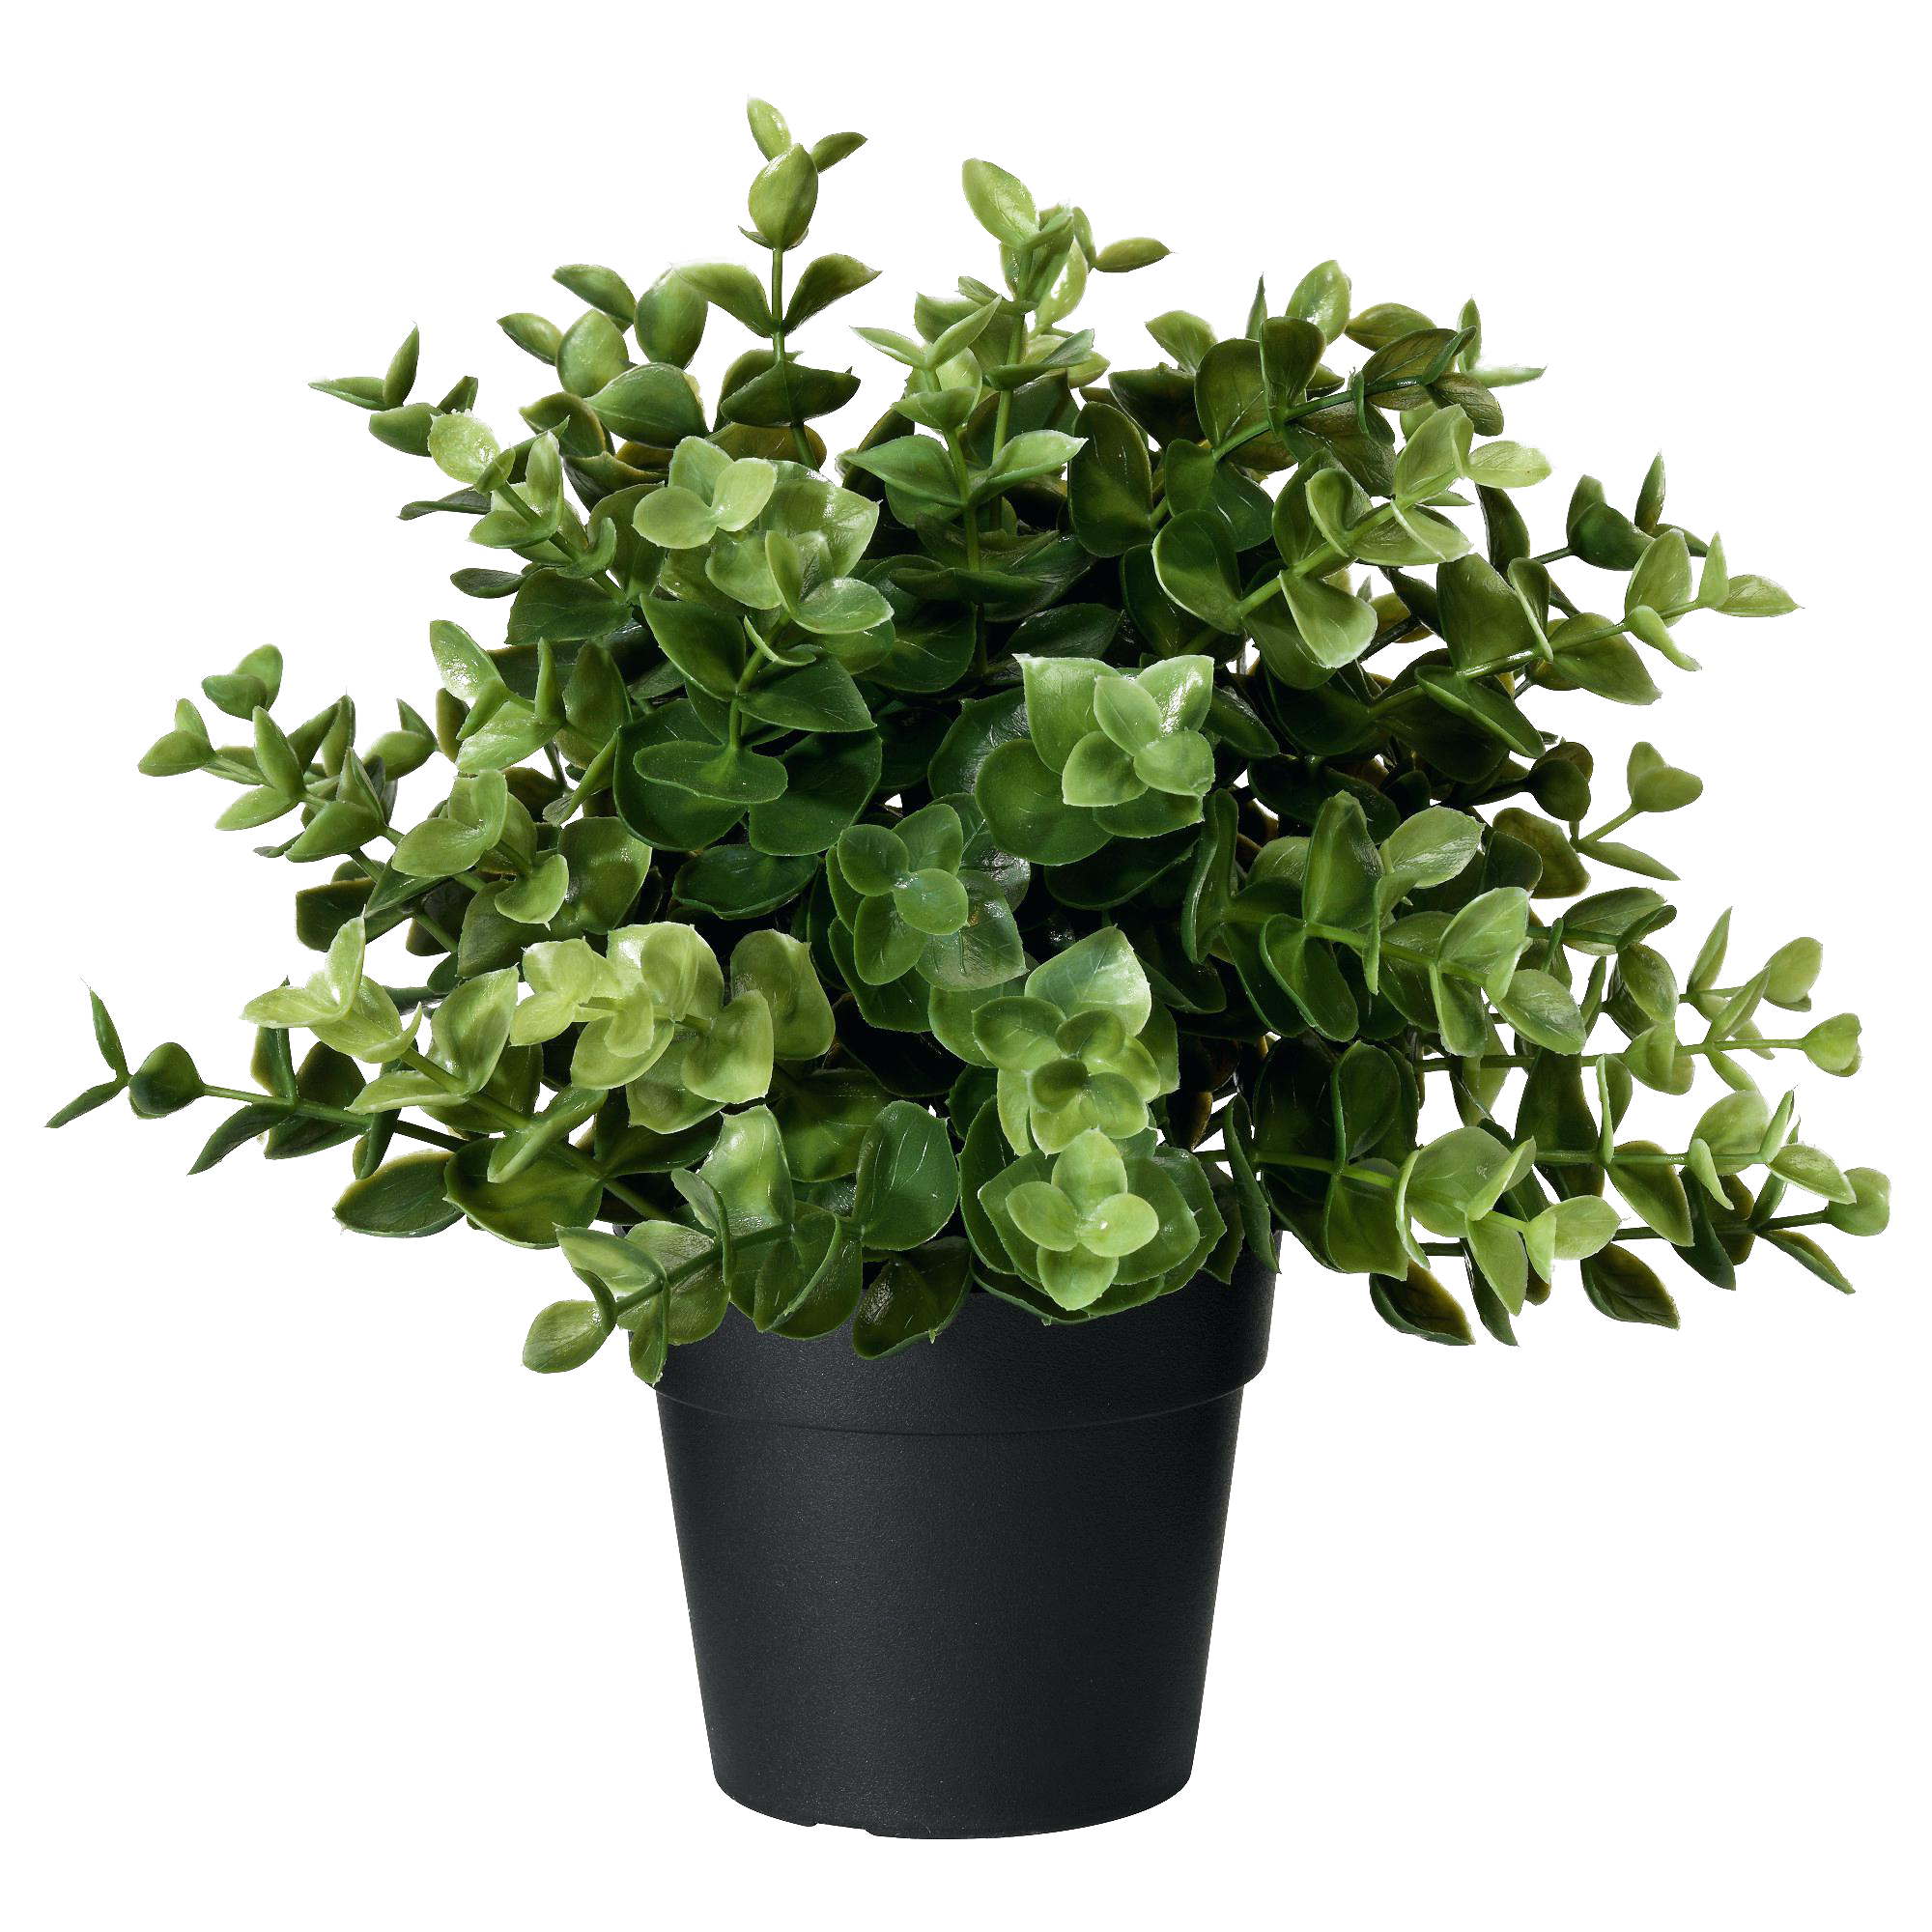 Artificial Potted Plant Oregano